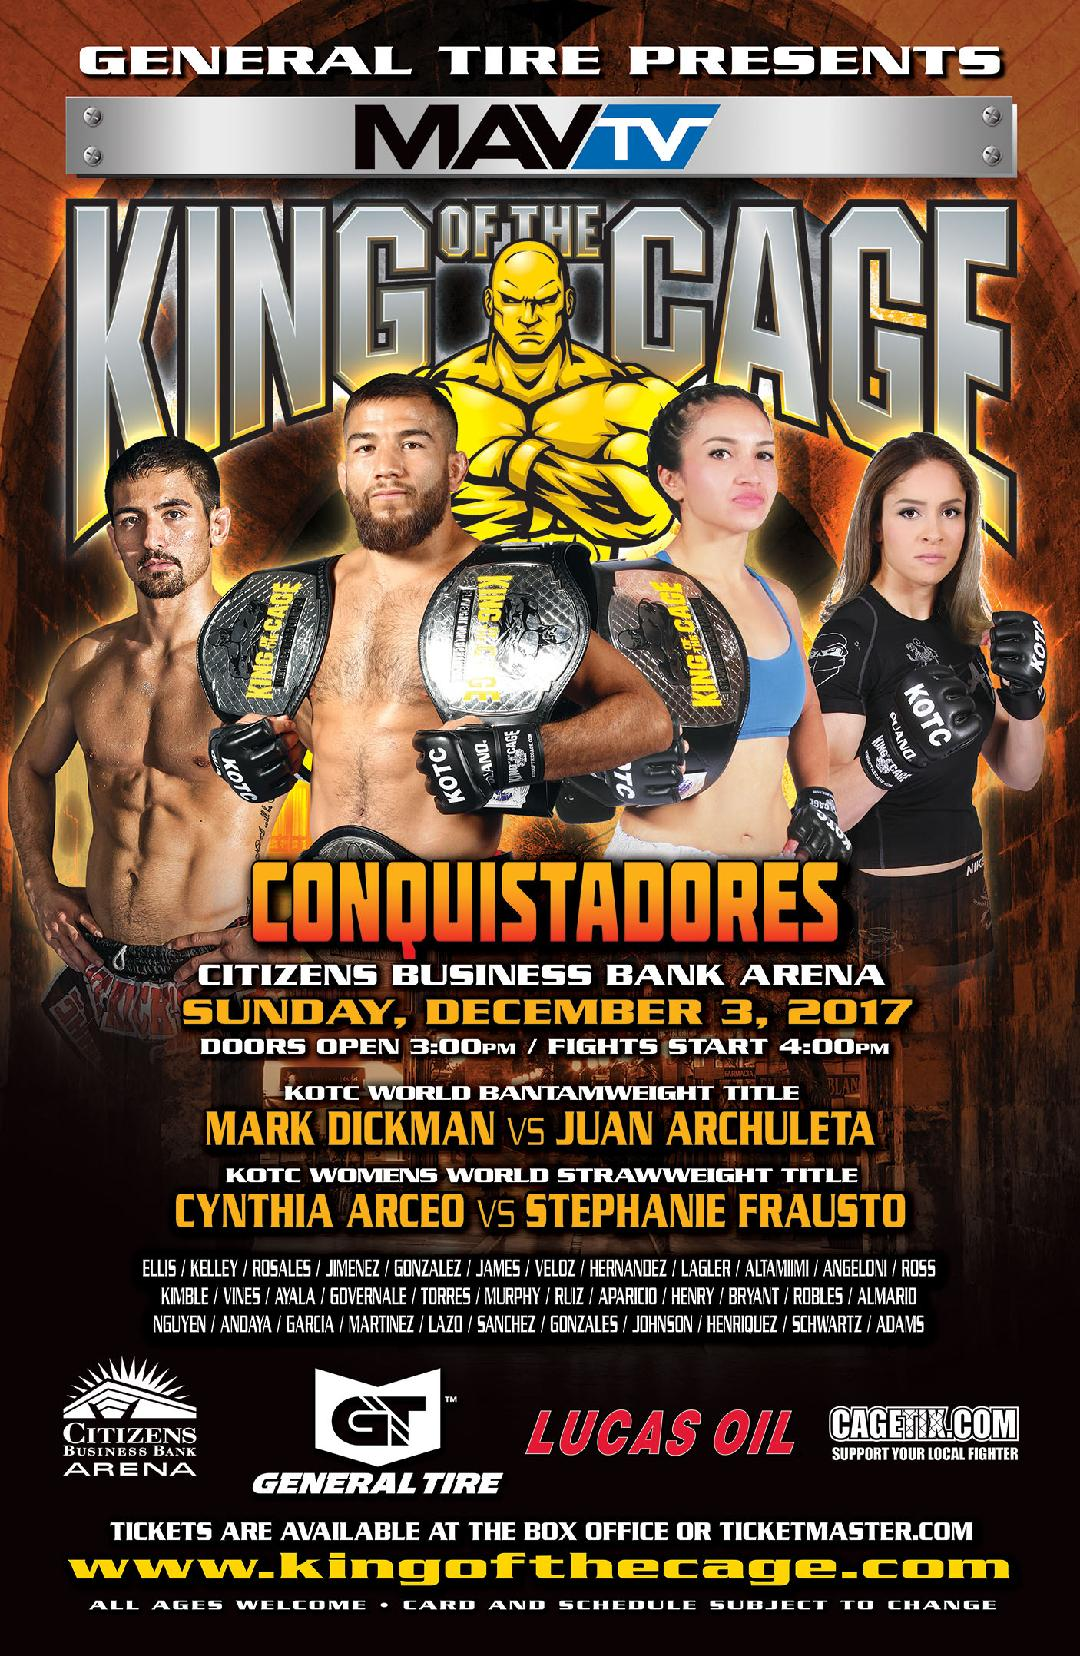 """King of the Cage Announces Main Fight Card for Citizens Business Bank Arena on December 3 for """"CONQUISTADORS"""""""